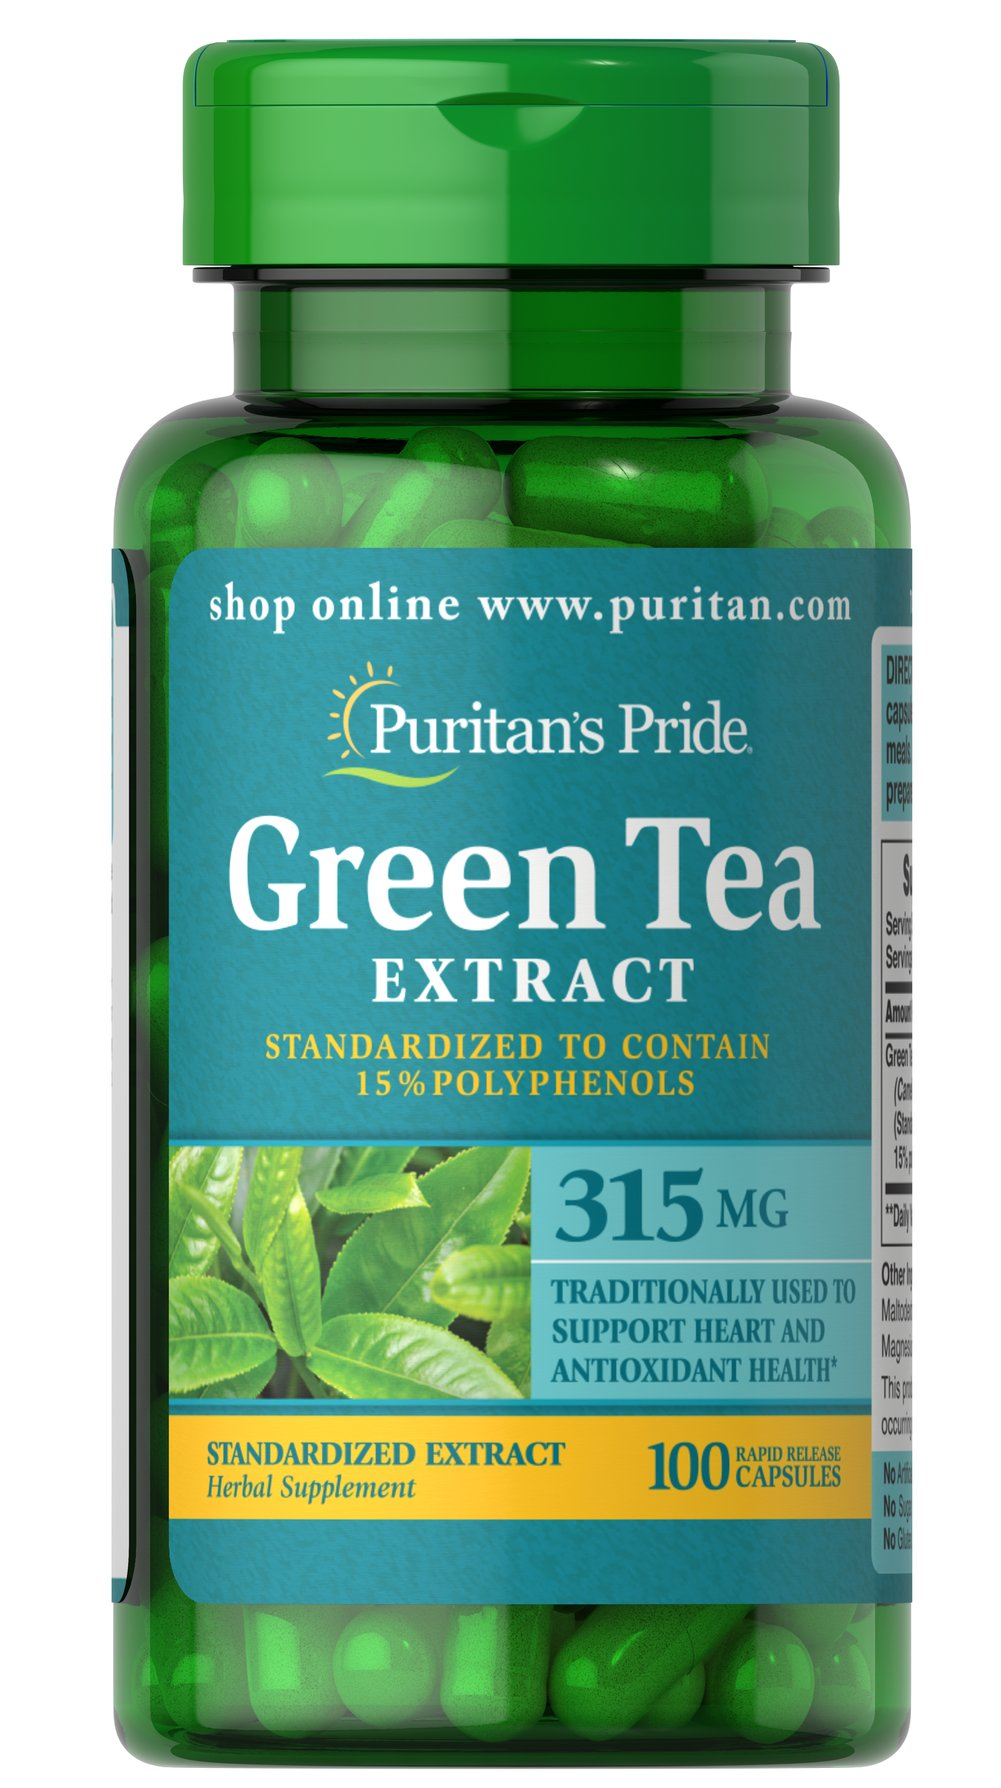 "Green Tea Standardized Extract 315 mg <p>Green Tea is a nutritional staple in Japan where it has been used for centuries. Green Tea contains beneficial flavonoids, which are natural phytochemicals that provide antioxidant support and health-enhancing properties.** Our ""non-irradiated"" Green Tea Extract contains naturally occurring EGCG.</p><p>Adults can take two capsules twice daily with meals. Capsules may be opened and prepared as a tea.</p> 100 Capsules 315 m"